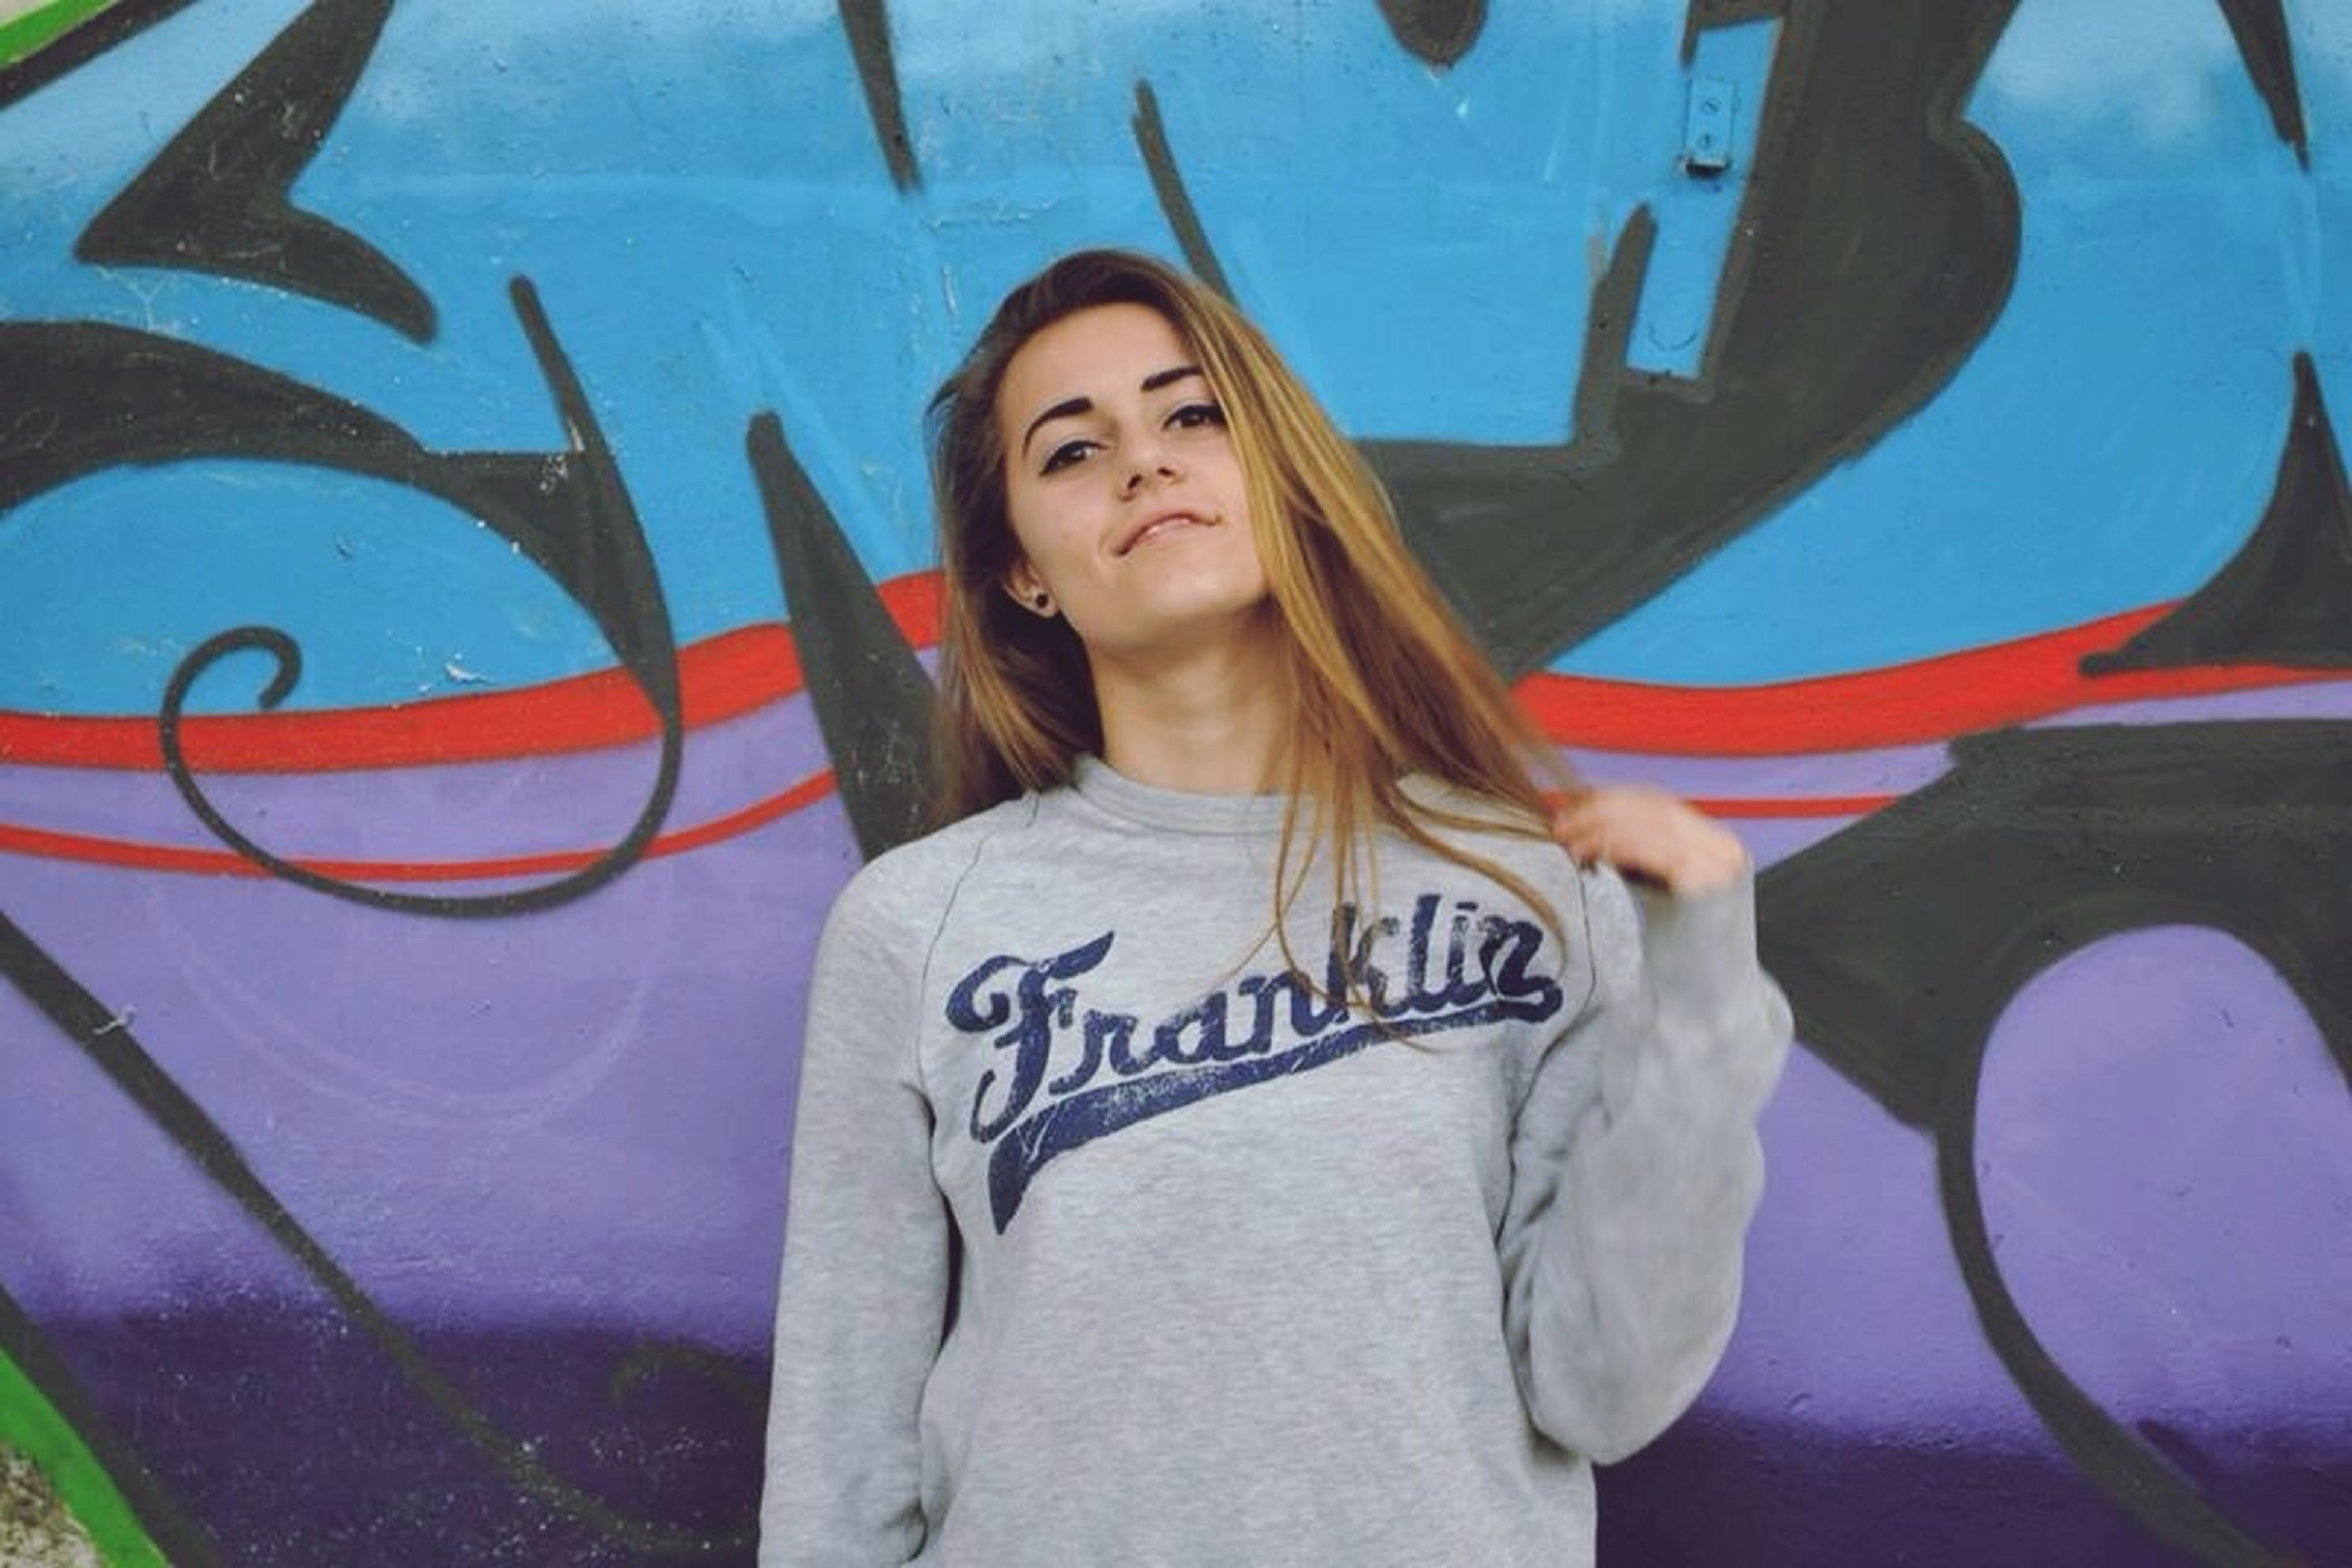 lifestyles, young adult, leisure activity, casual clothing, young women, person, standing, graffiti, three quarter length, looking at camera, long hair, portrait, waist up, front view, day, wall - building feature, outdoors